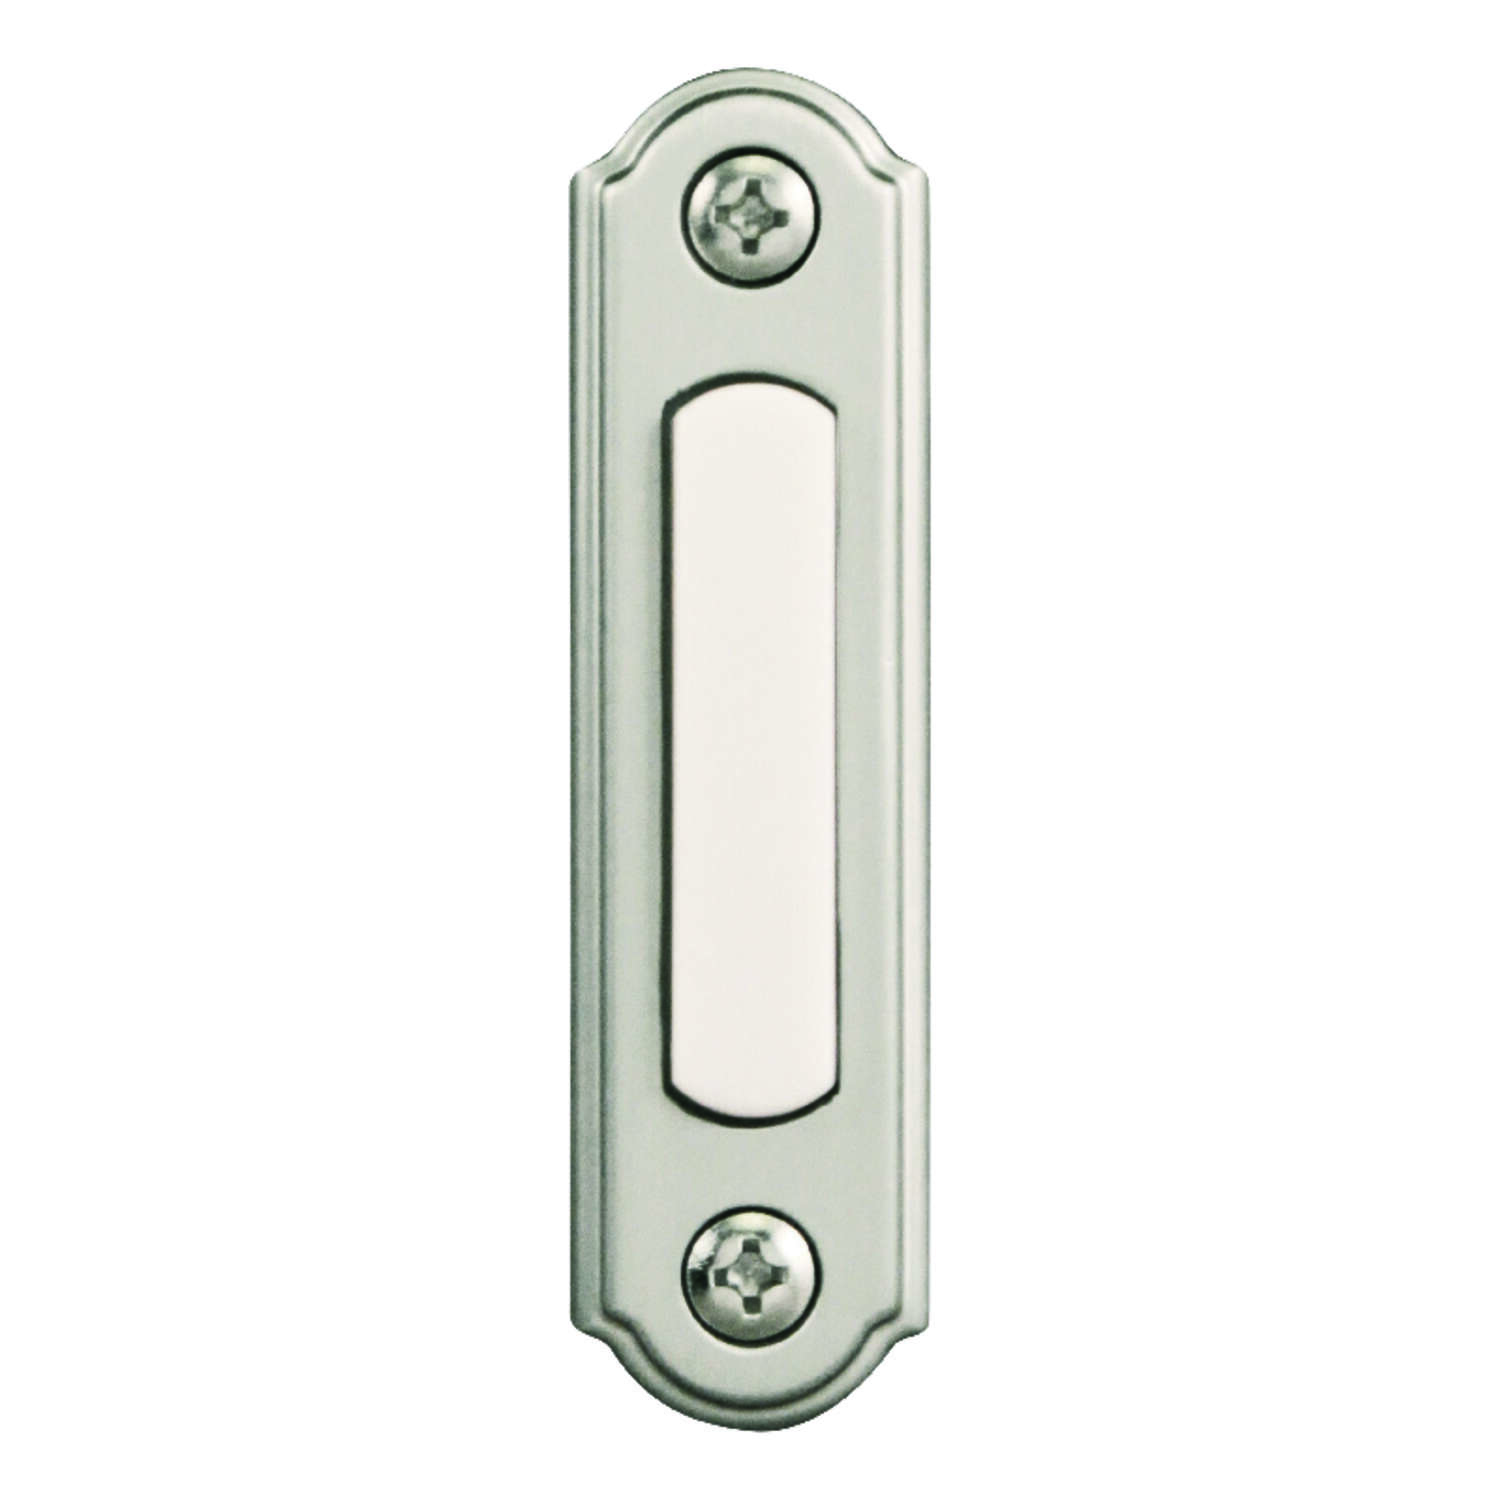 Heath Zenith Satin Nickel Silver Metal Wired Pushbutton Doorbell